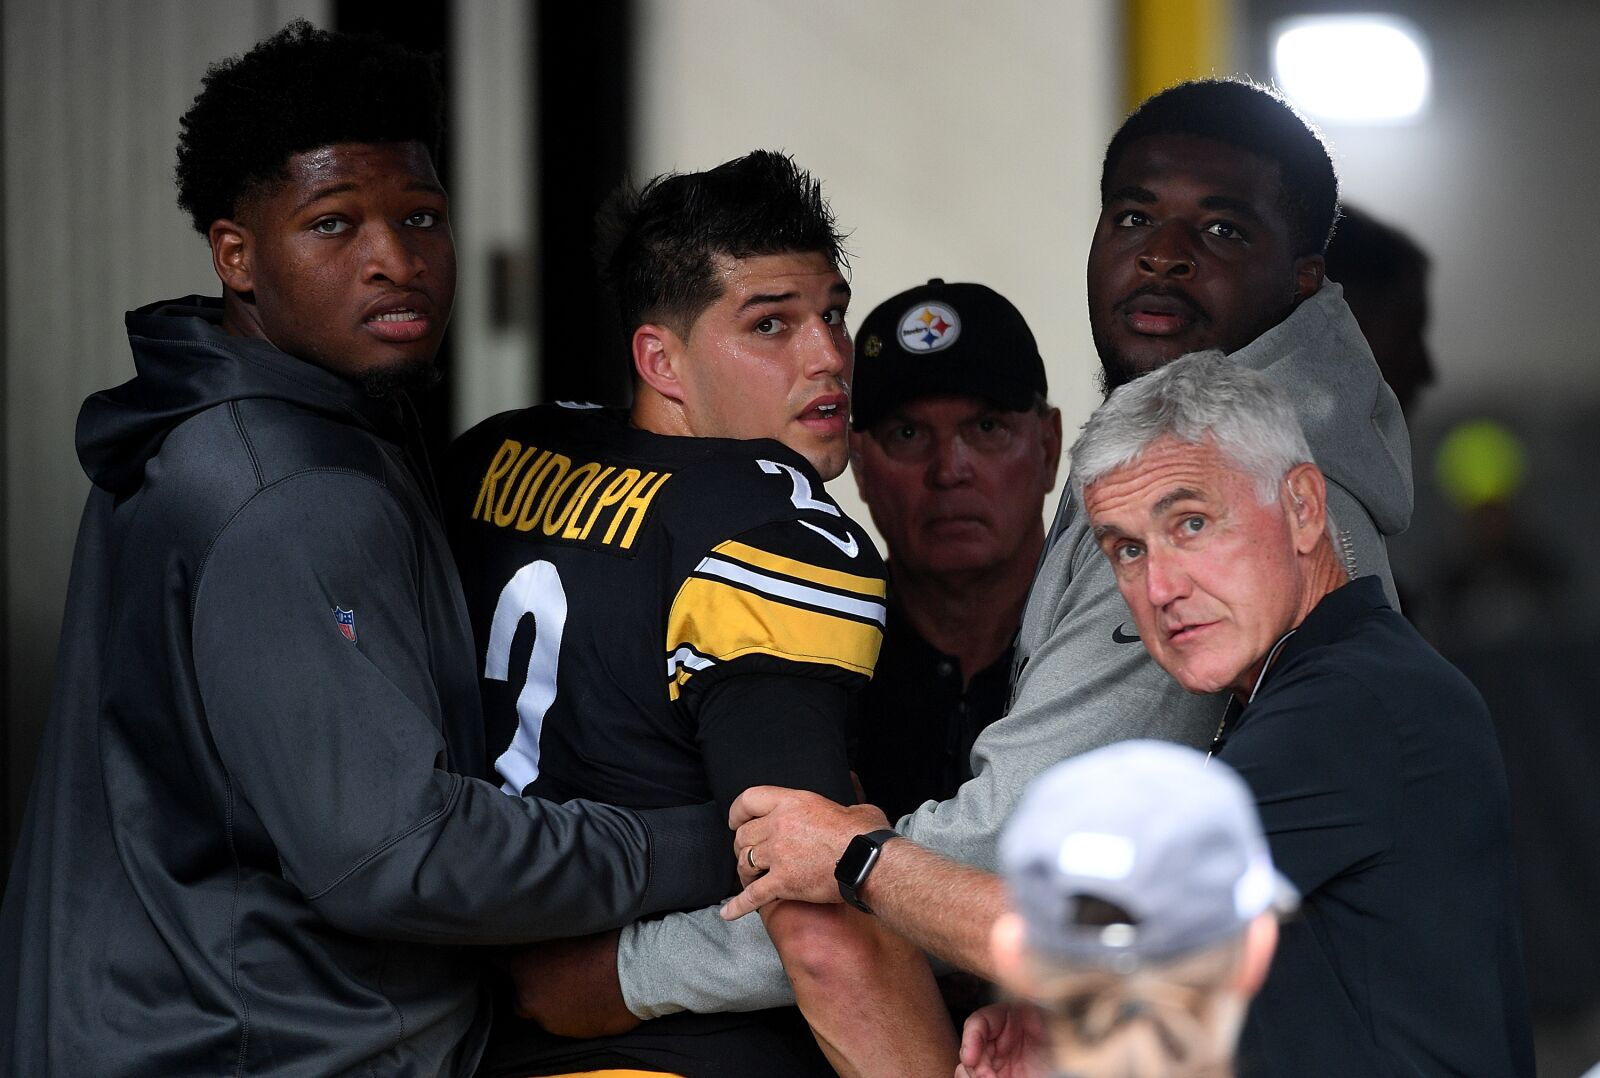 Steelers QB Mason Rudolph admits to having no memory of the hit that left him unconscious